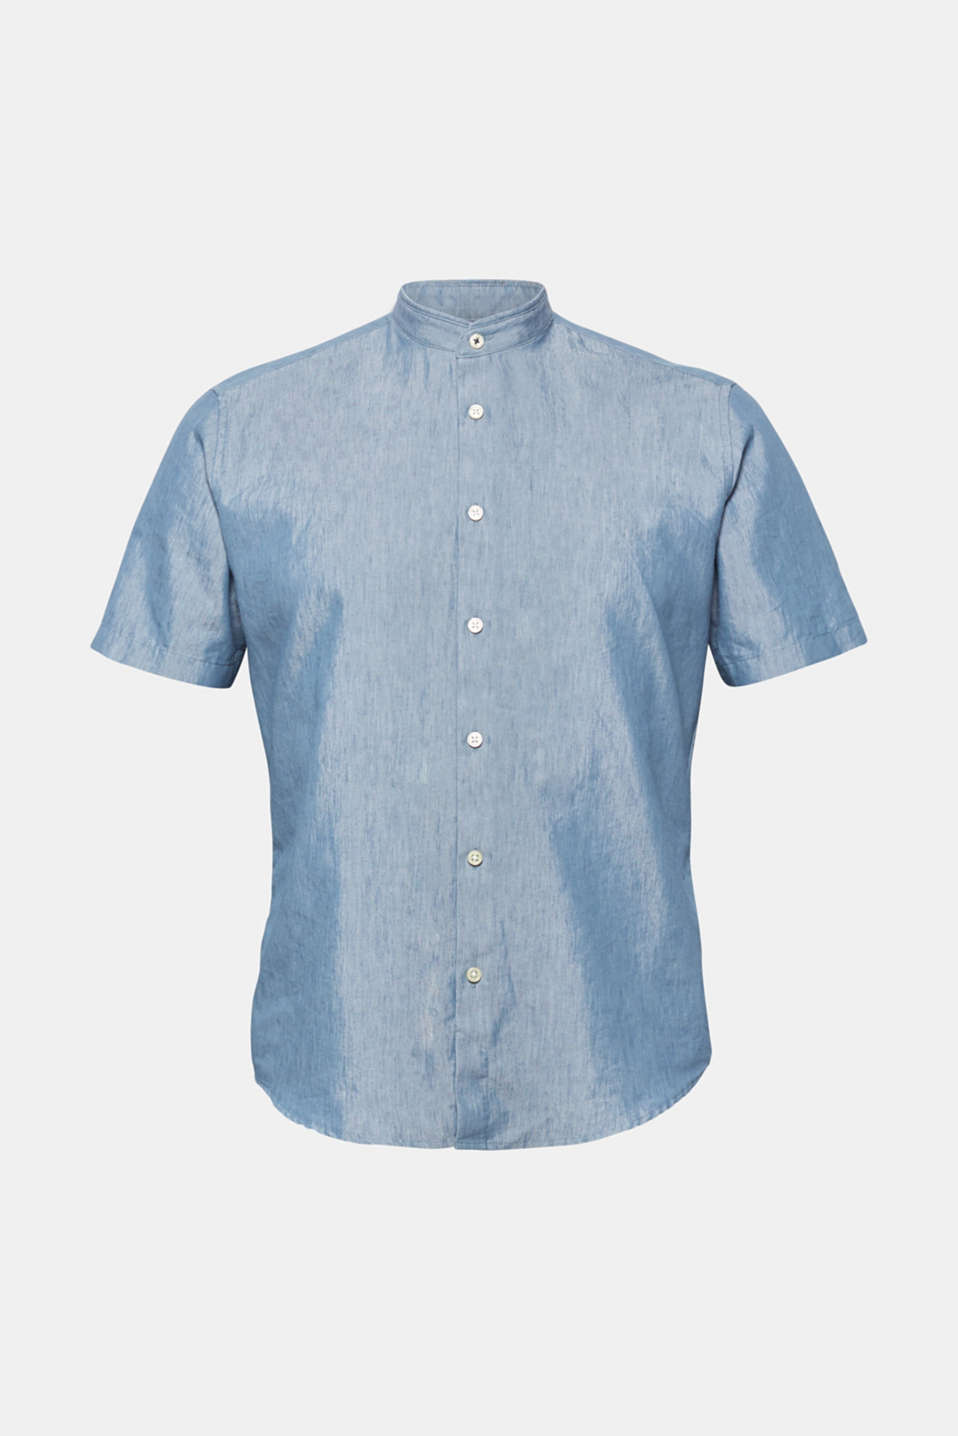 Shirts woven Slim fit, PETROL BLUE, detail image number 6